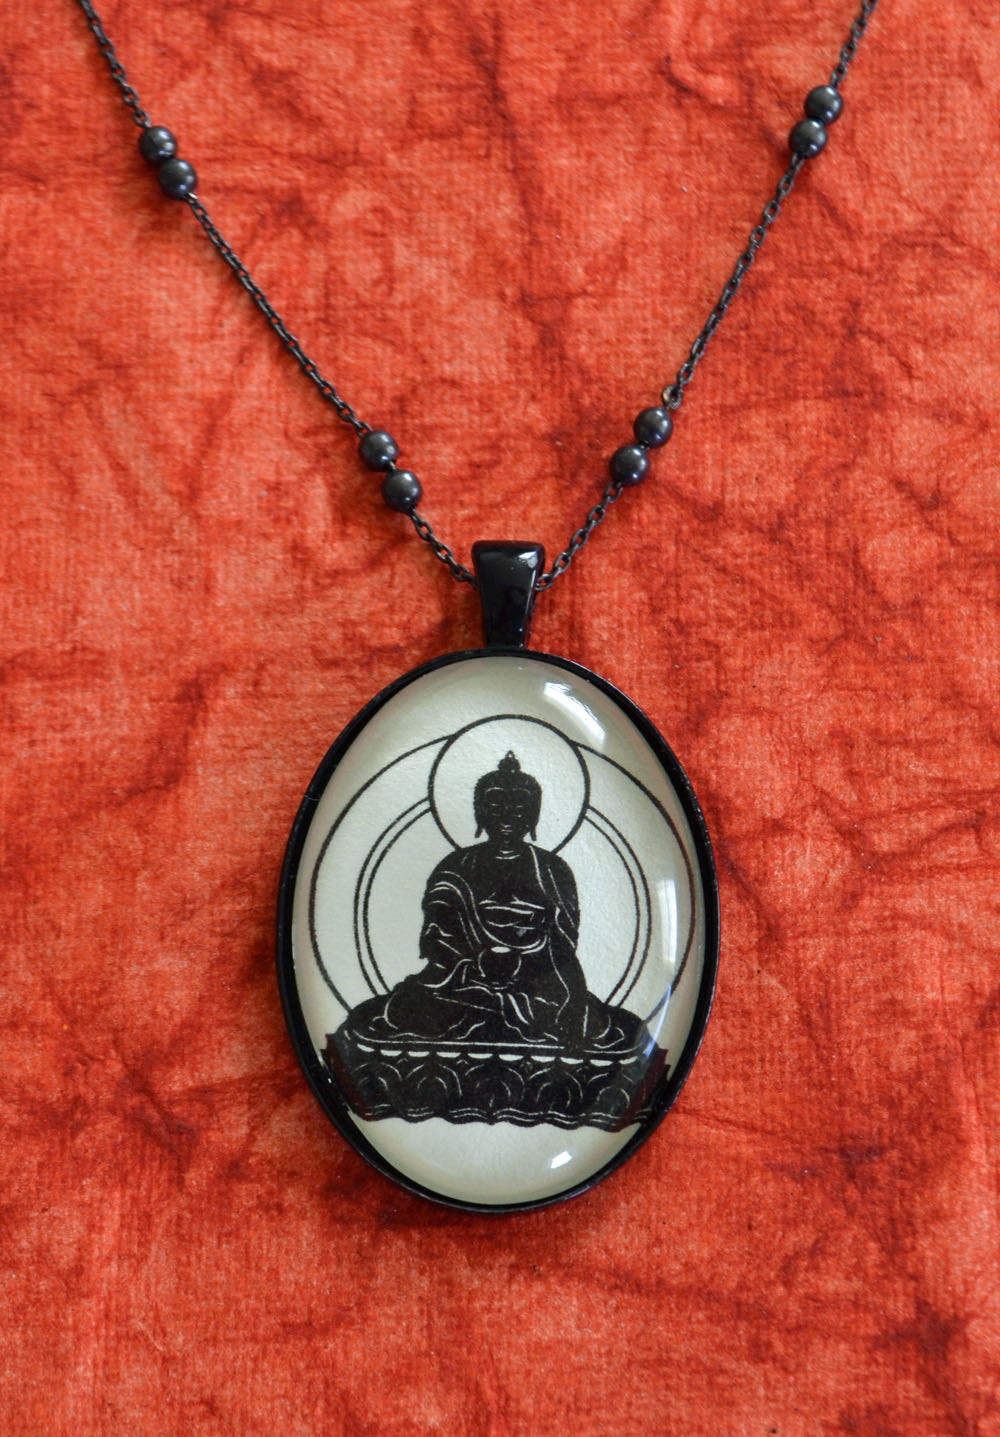 BUDDHA Necklace, pendant on chain - Silhouette Jewelry